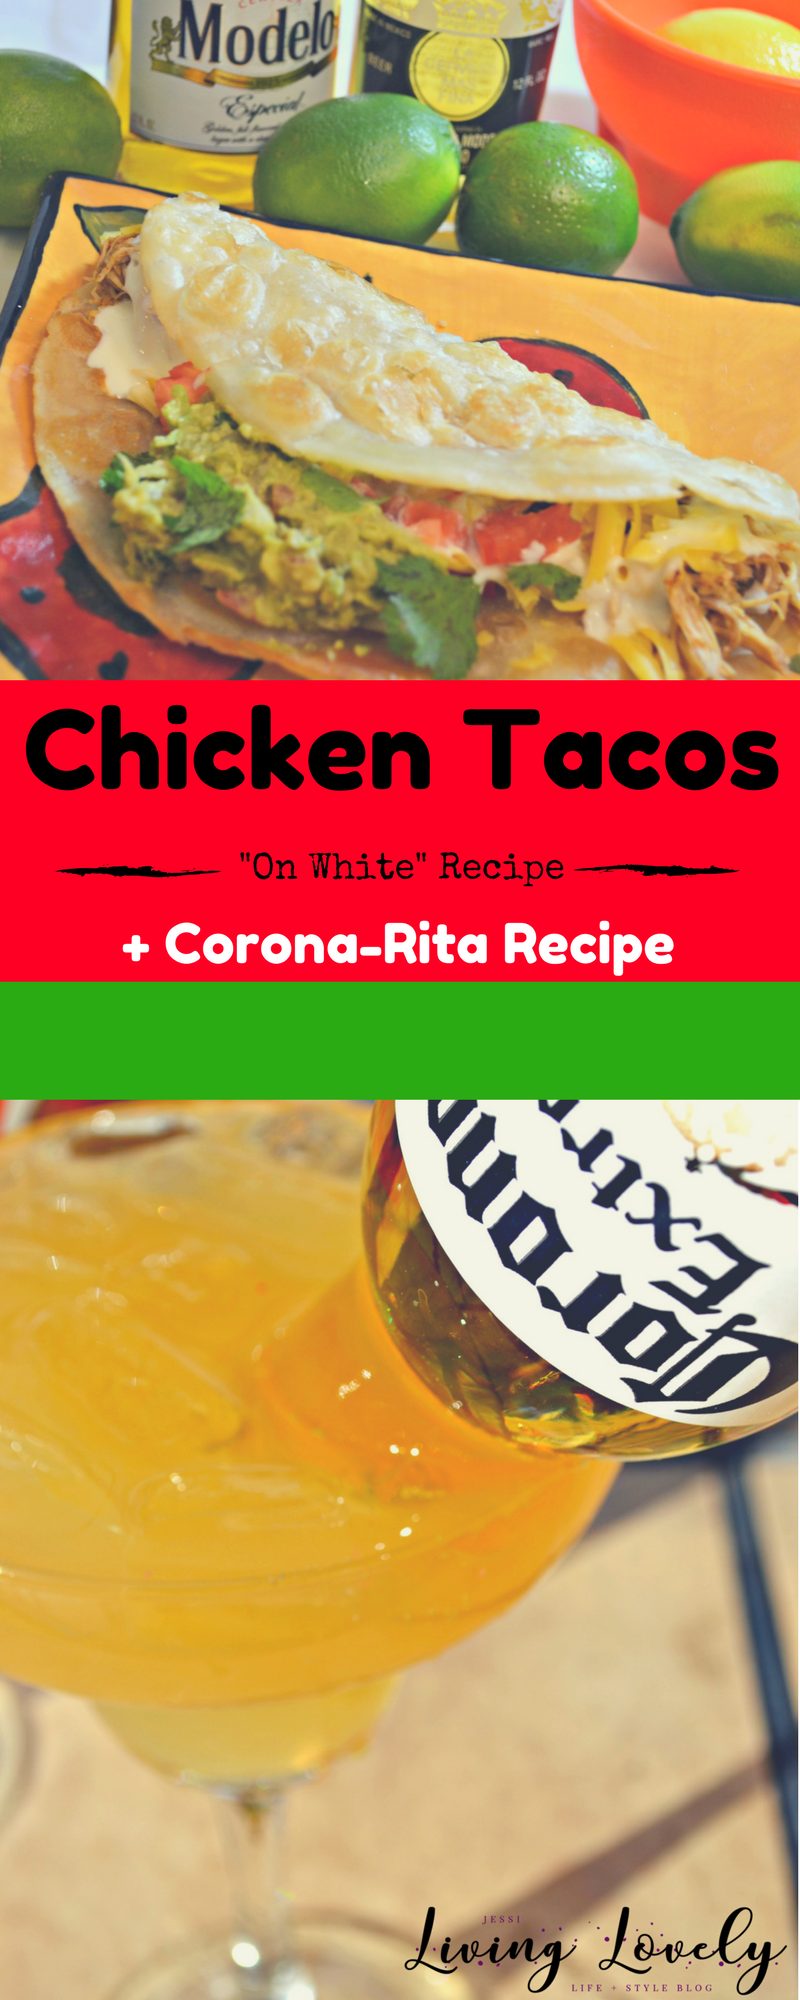 Cinco De Mayo Recipes: Chicken Tacos on White Recipe and how to make Corona-Ritas